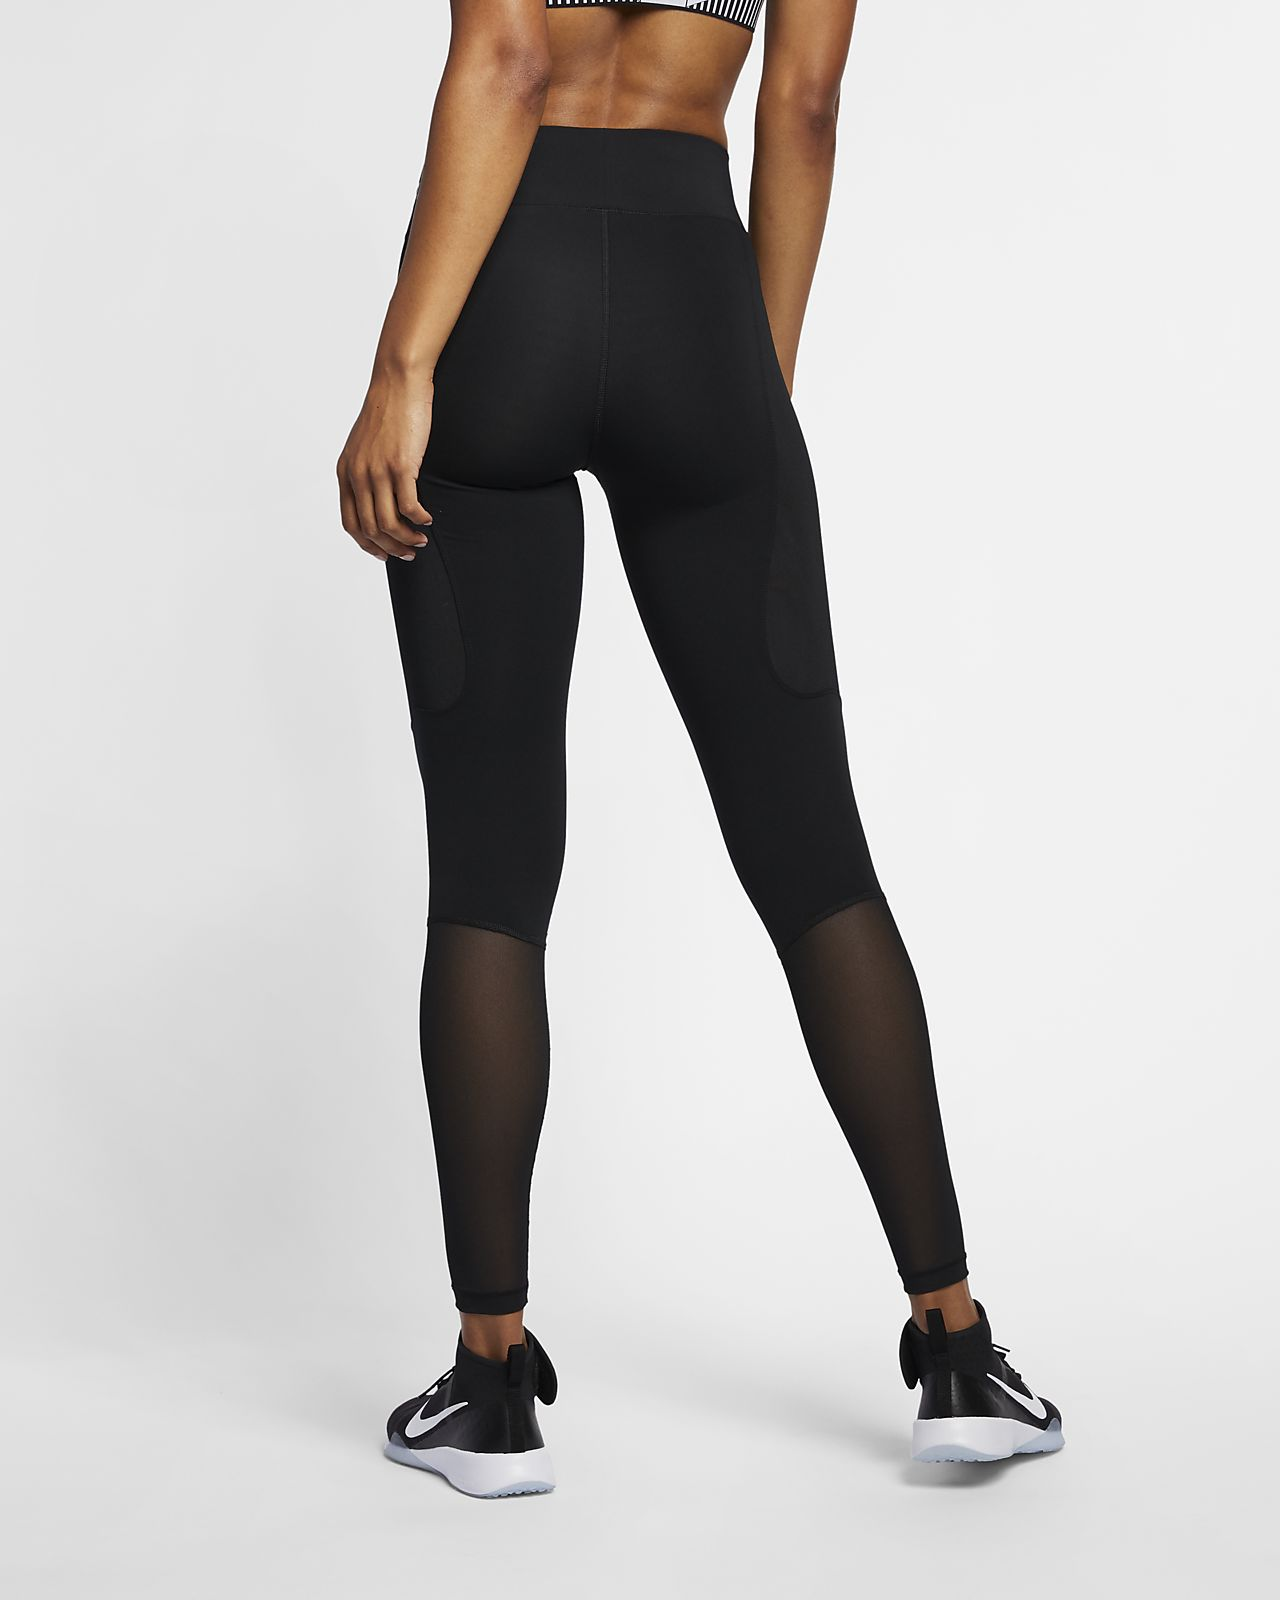 factory authentic c2c83 d62a8 Low Resolution Nike Pro HyperCool Women s Tights Nike Pro HyperCool Women s  Tights